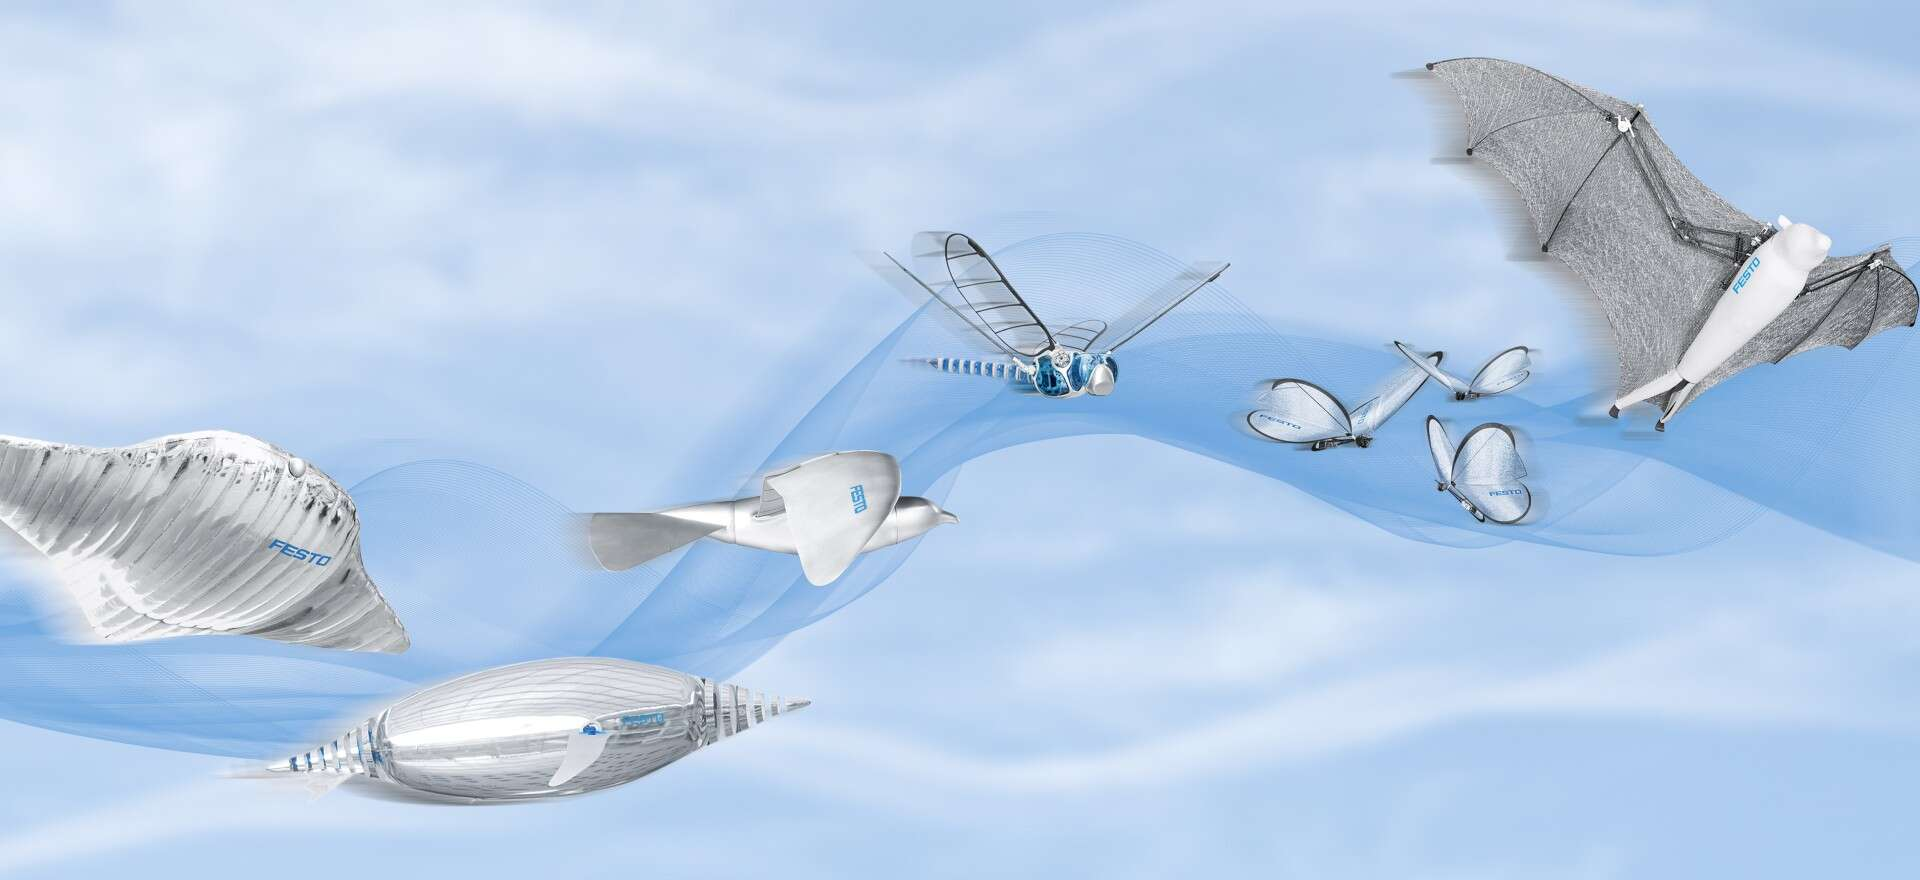 Flying in the Bionic Learning Network